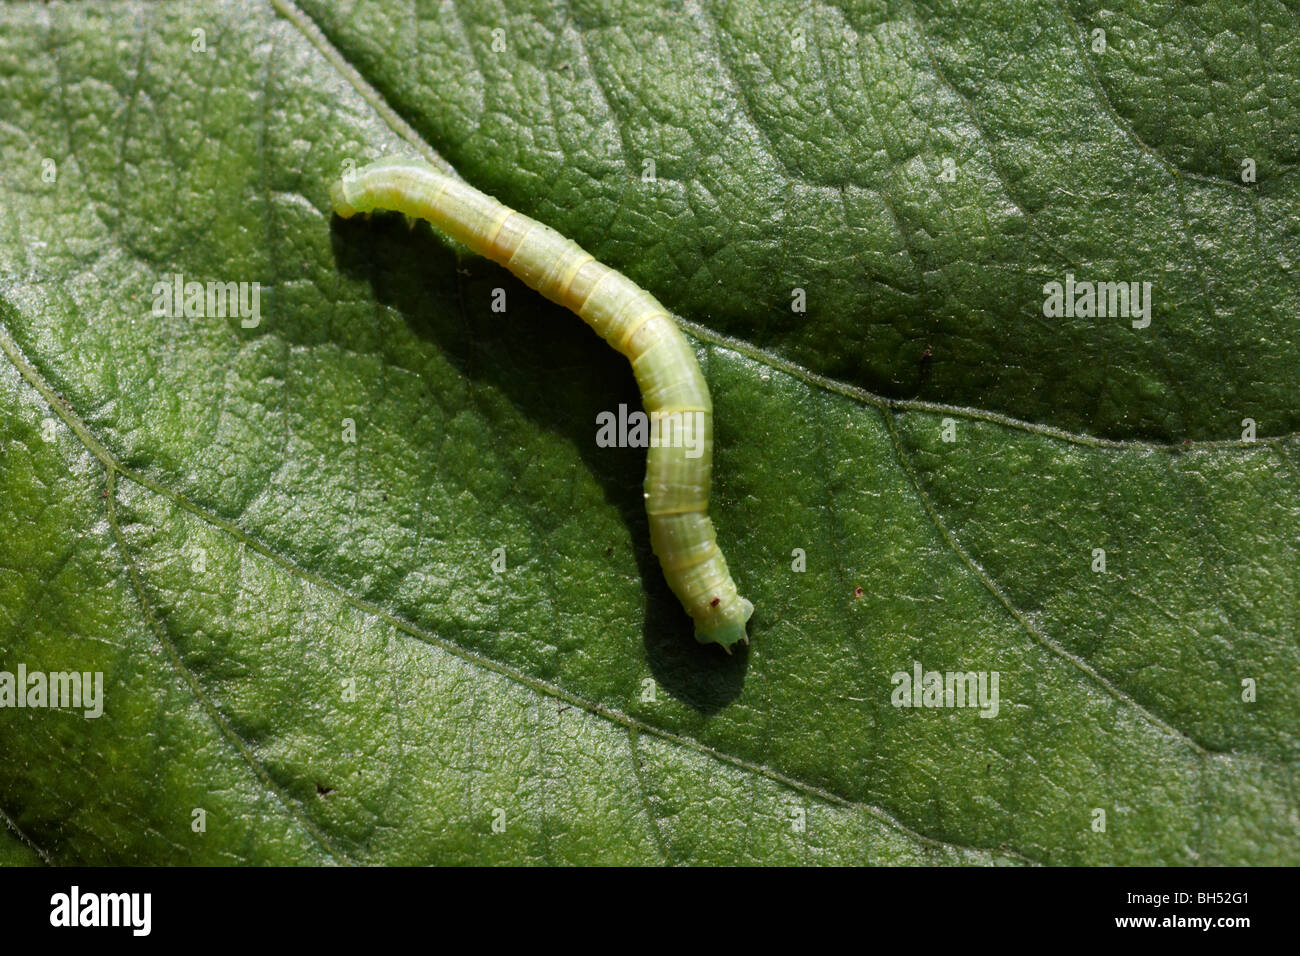 Speckled wood butterfly caterpillar (pararge aegeria) resting on leaf in August. - Stock Image